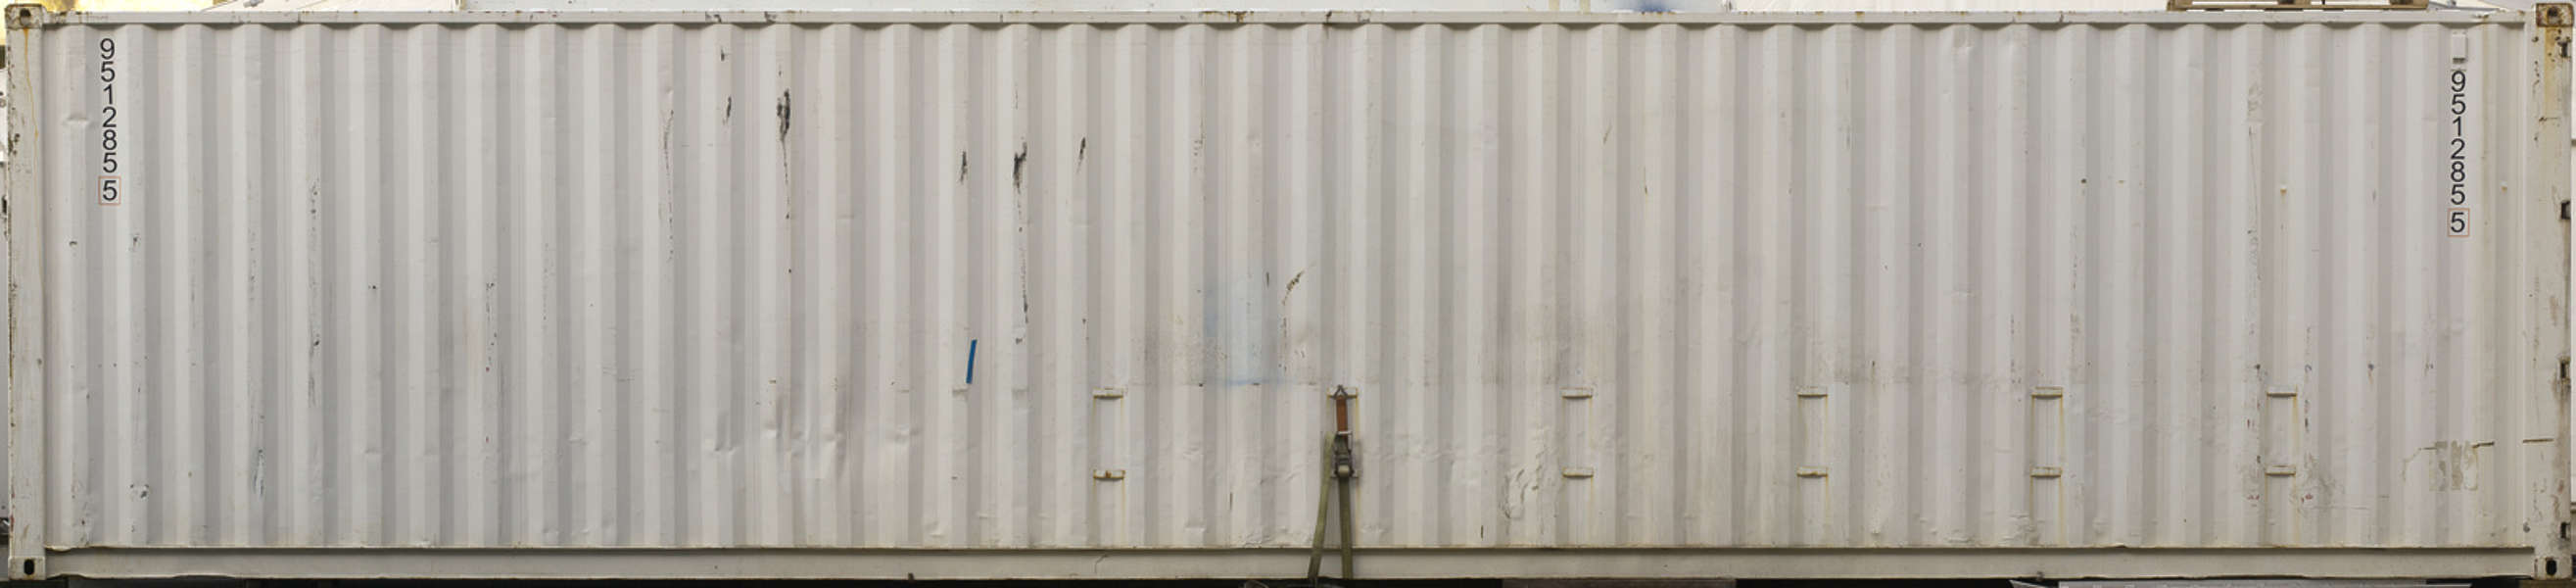 Metalcontainers0167 Free Background Texture Metal